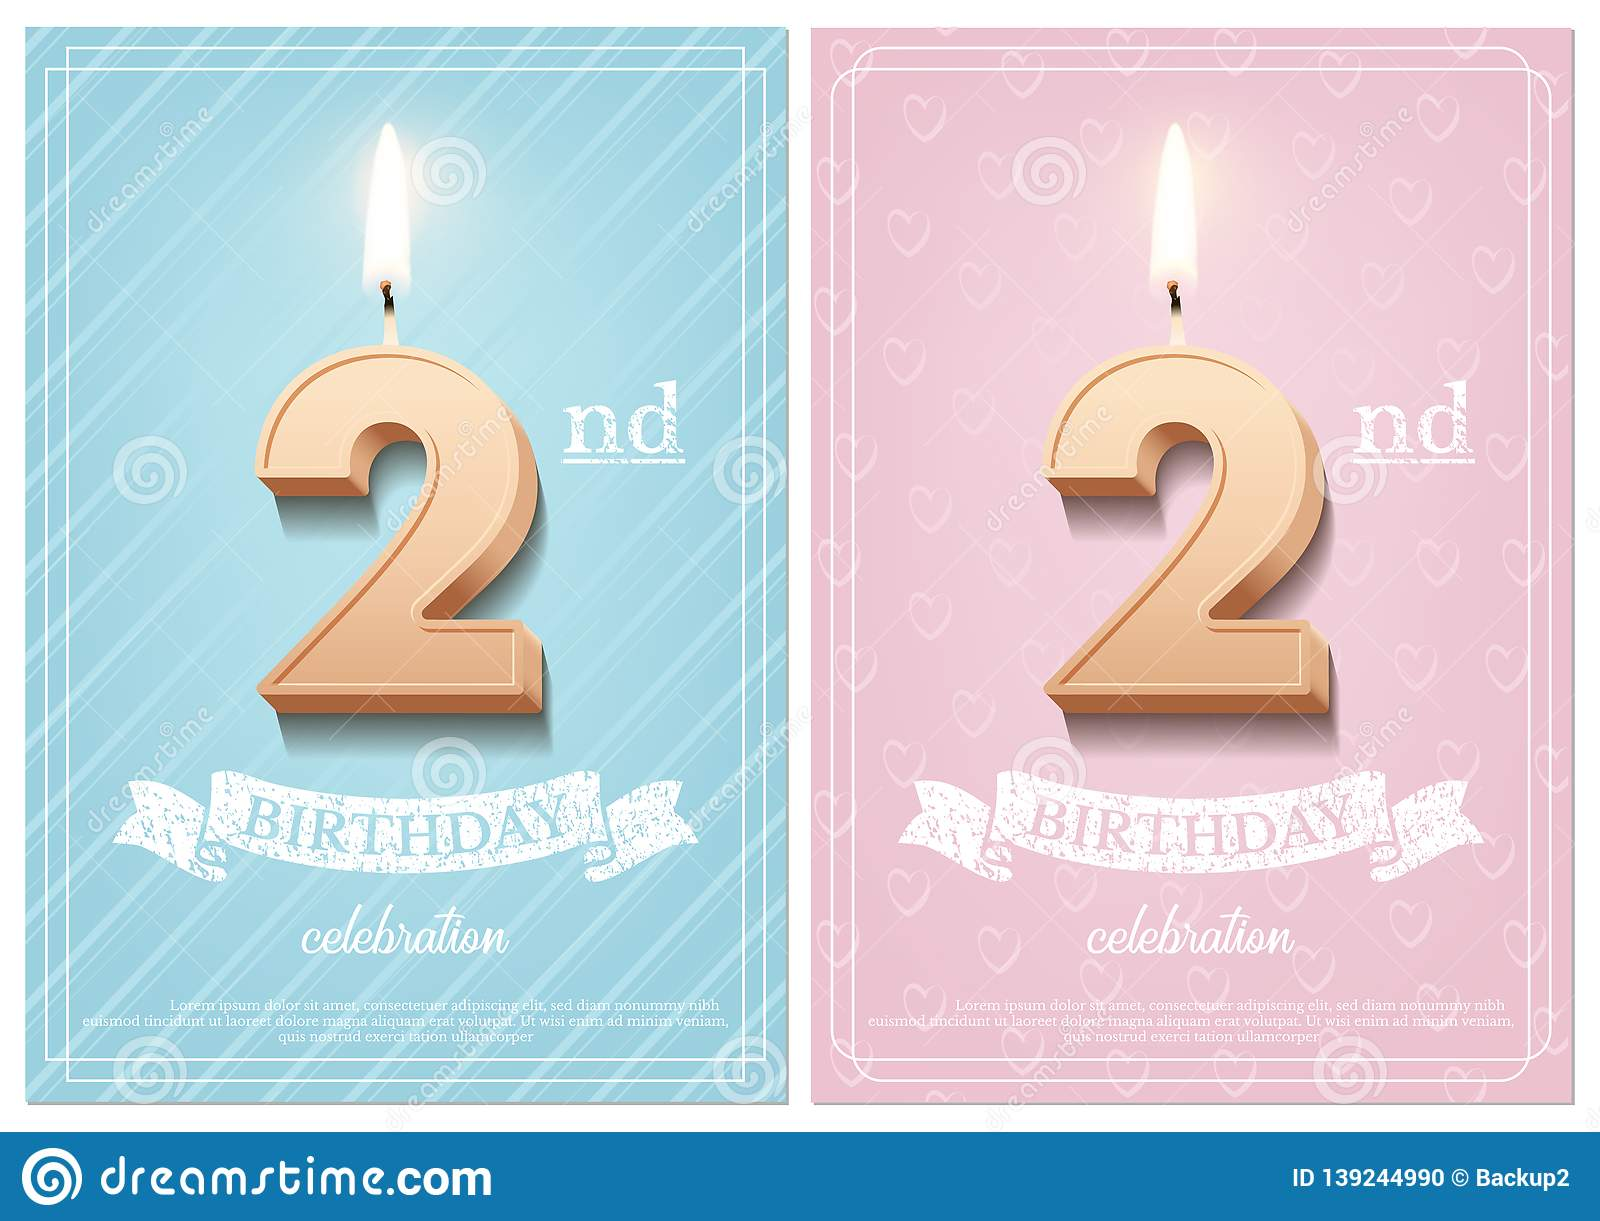 Burning Number 2 Birthday Candle With Vintage Ribbon And Celebration Text On Textured Blue Pink Backgrounds In Postcard Format